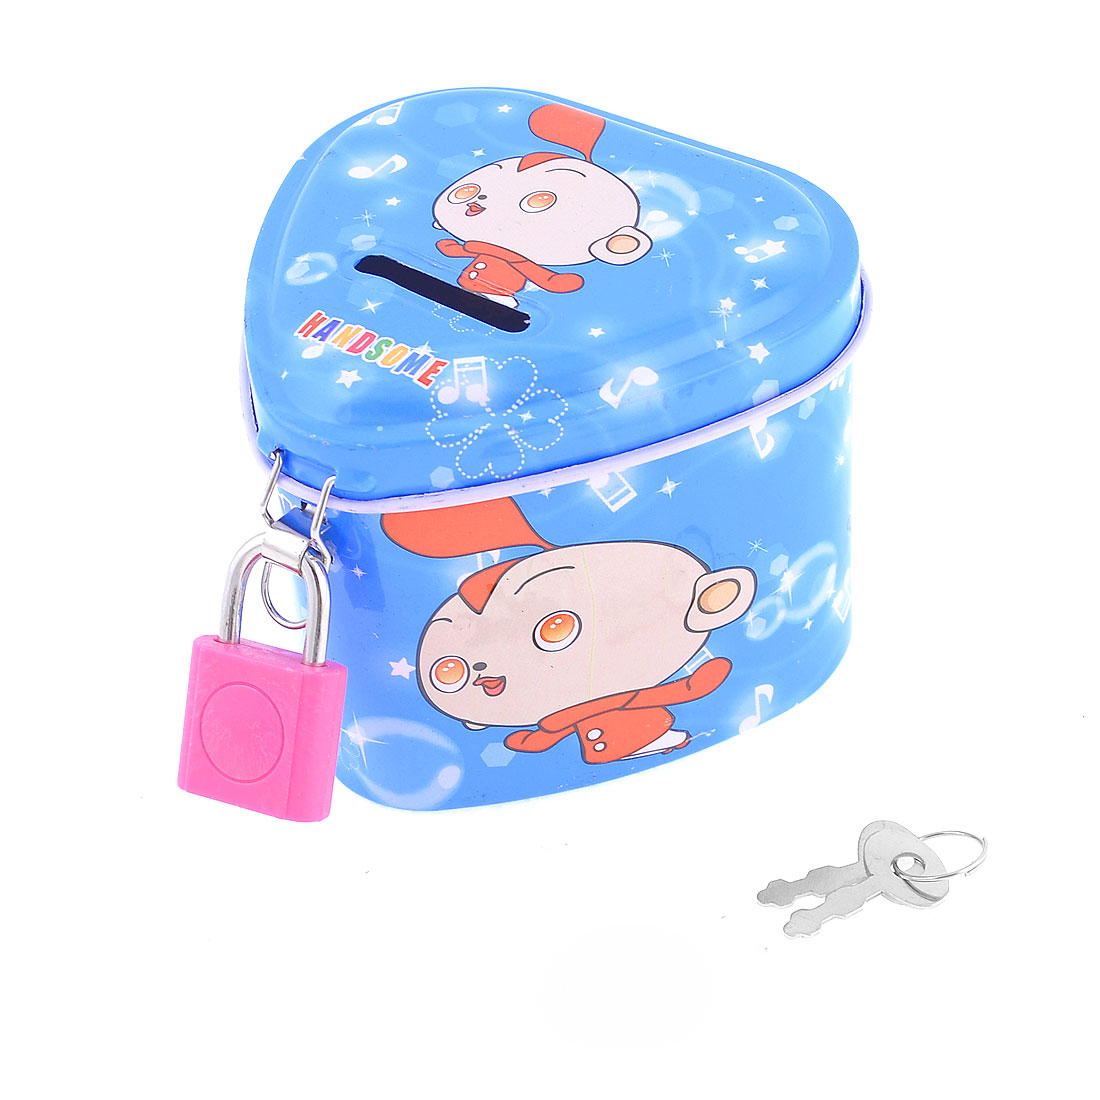 Children Heart Shaped Cartoon Kid Print Piggy Bank Money Saving Box Blue